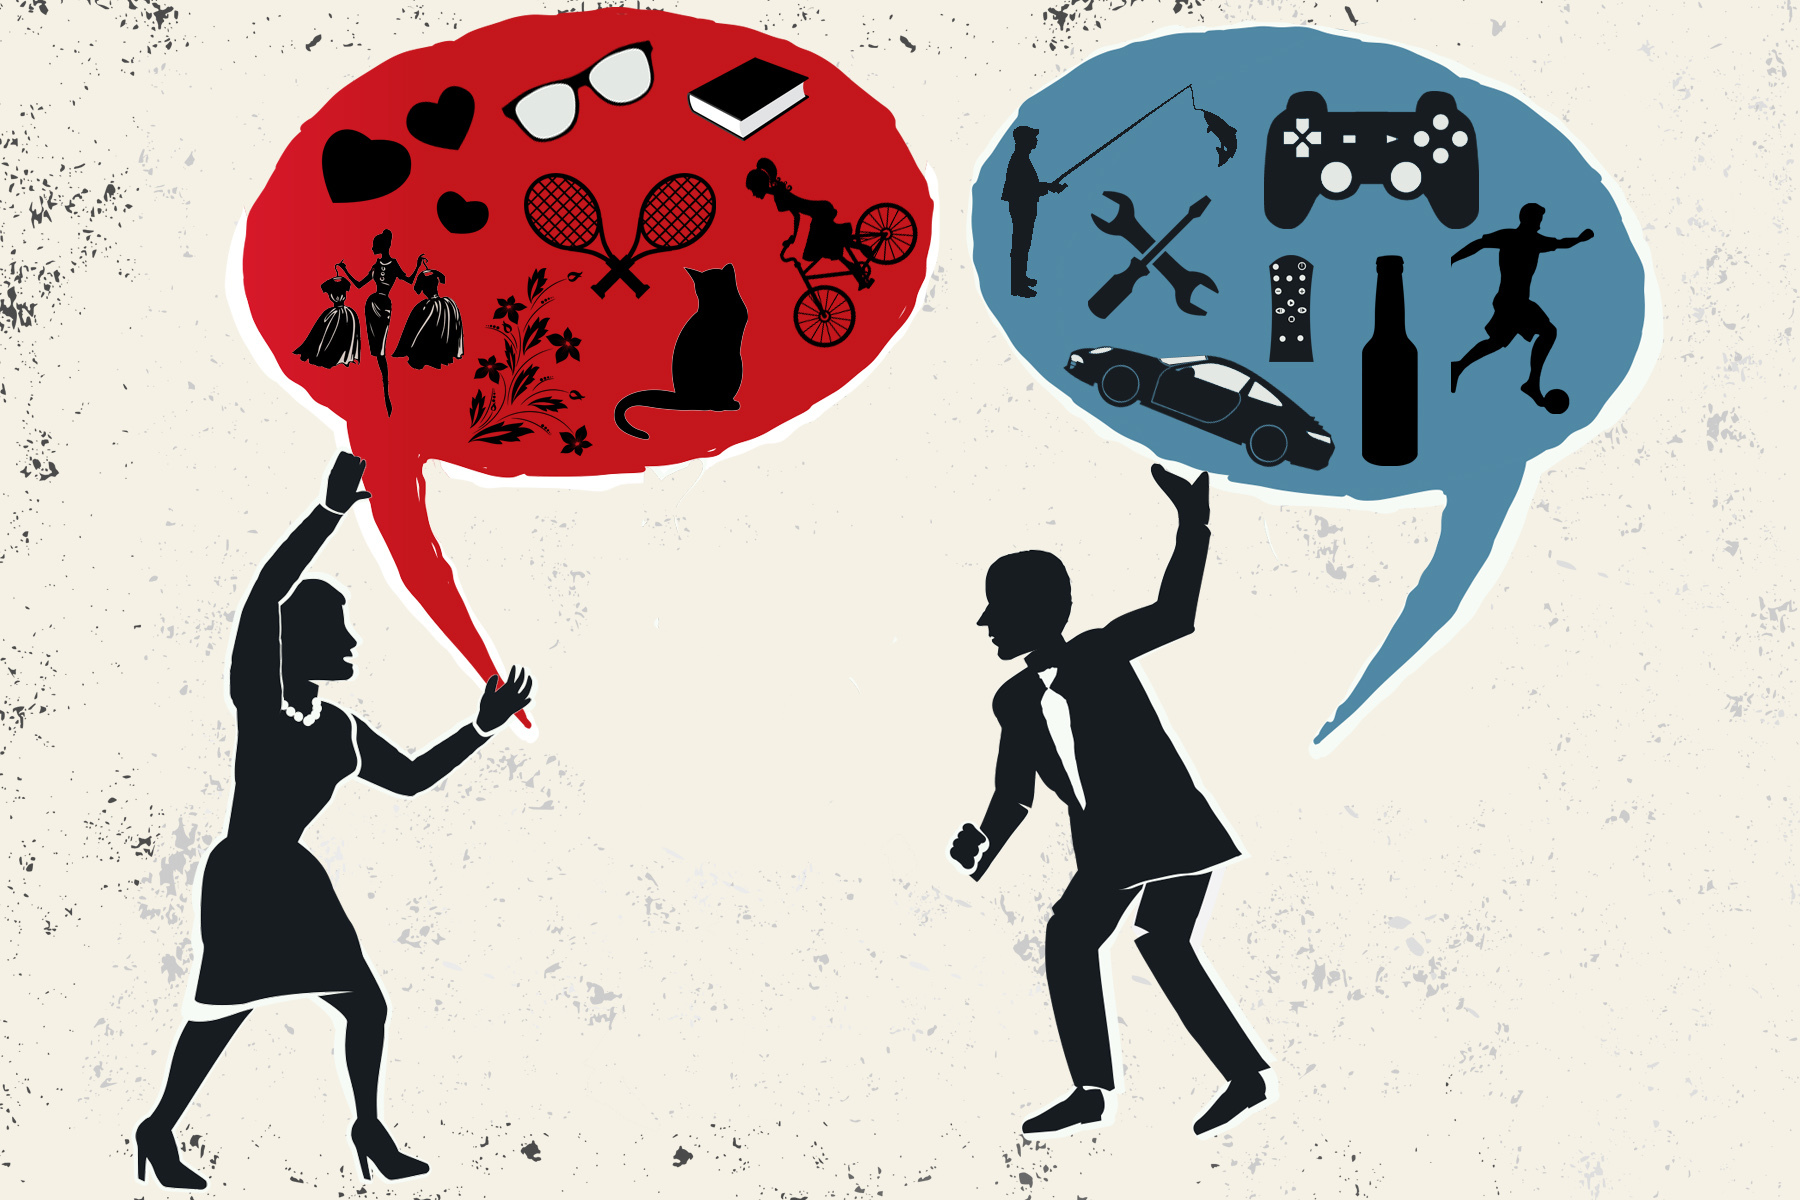 A man and a woman hold speech bubble. In their bubbles are icons which represent stereotypes about their gender. For example, in the female speech bubble there are flowers and dresses. In the male speech bubble there are cars and football.